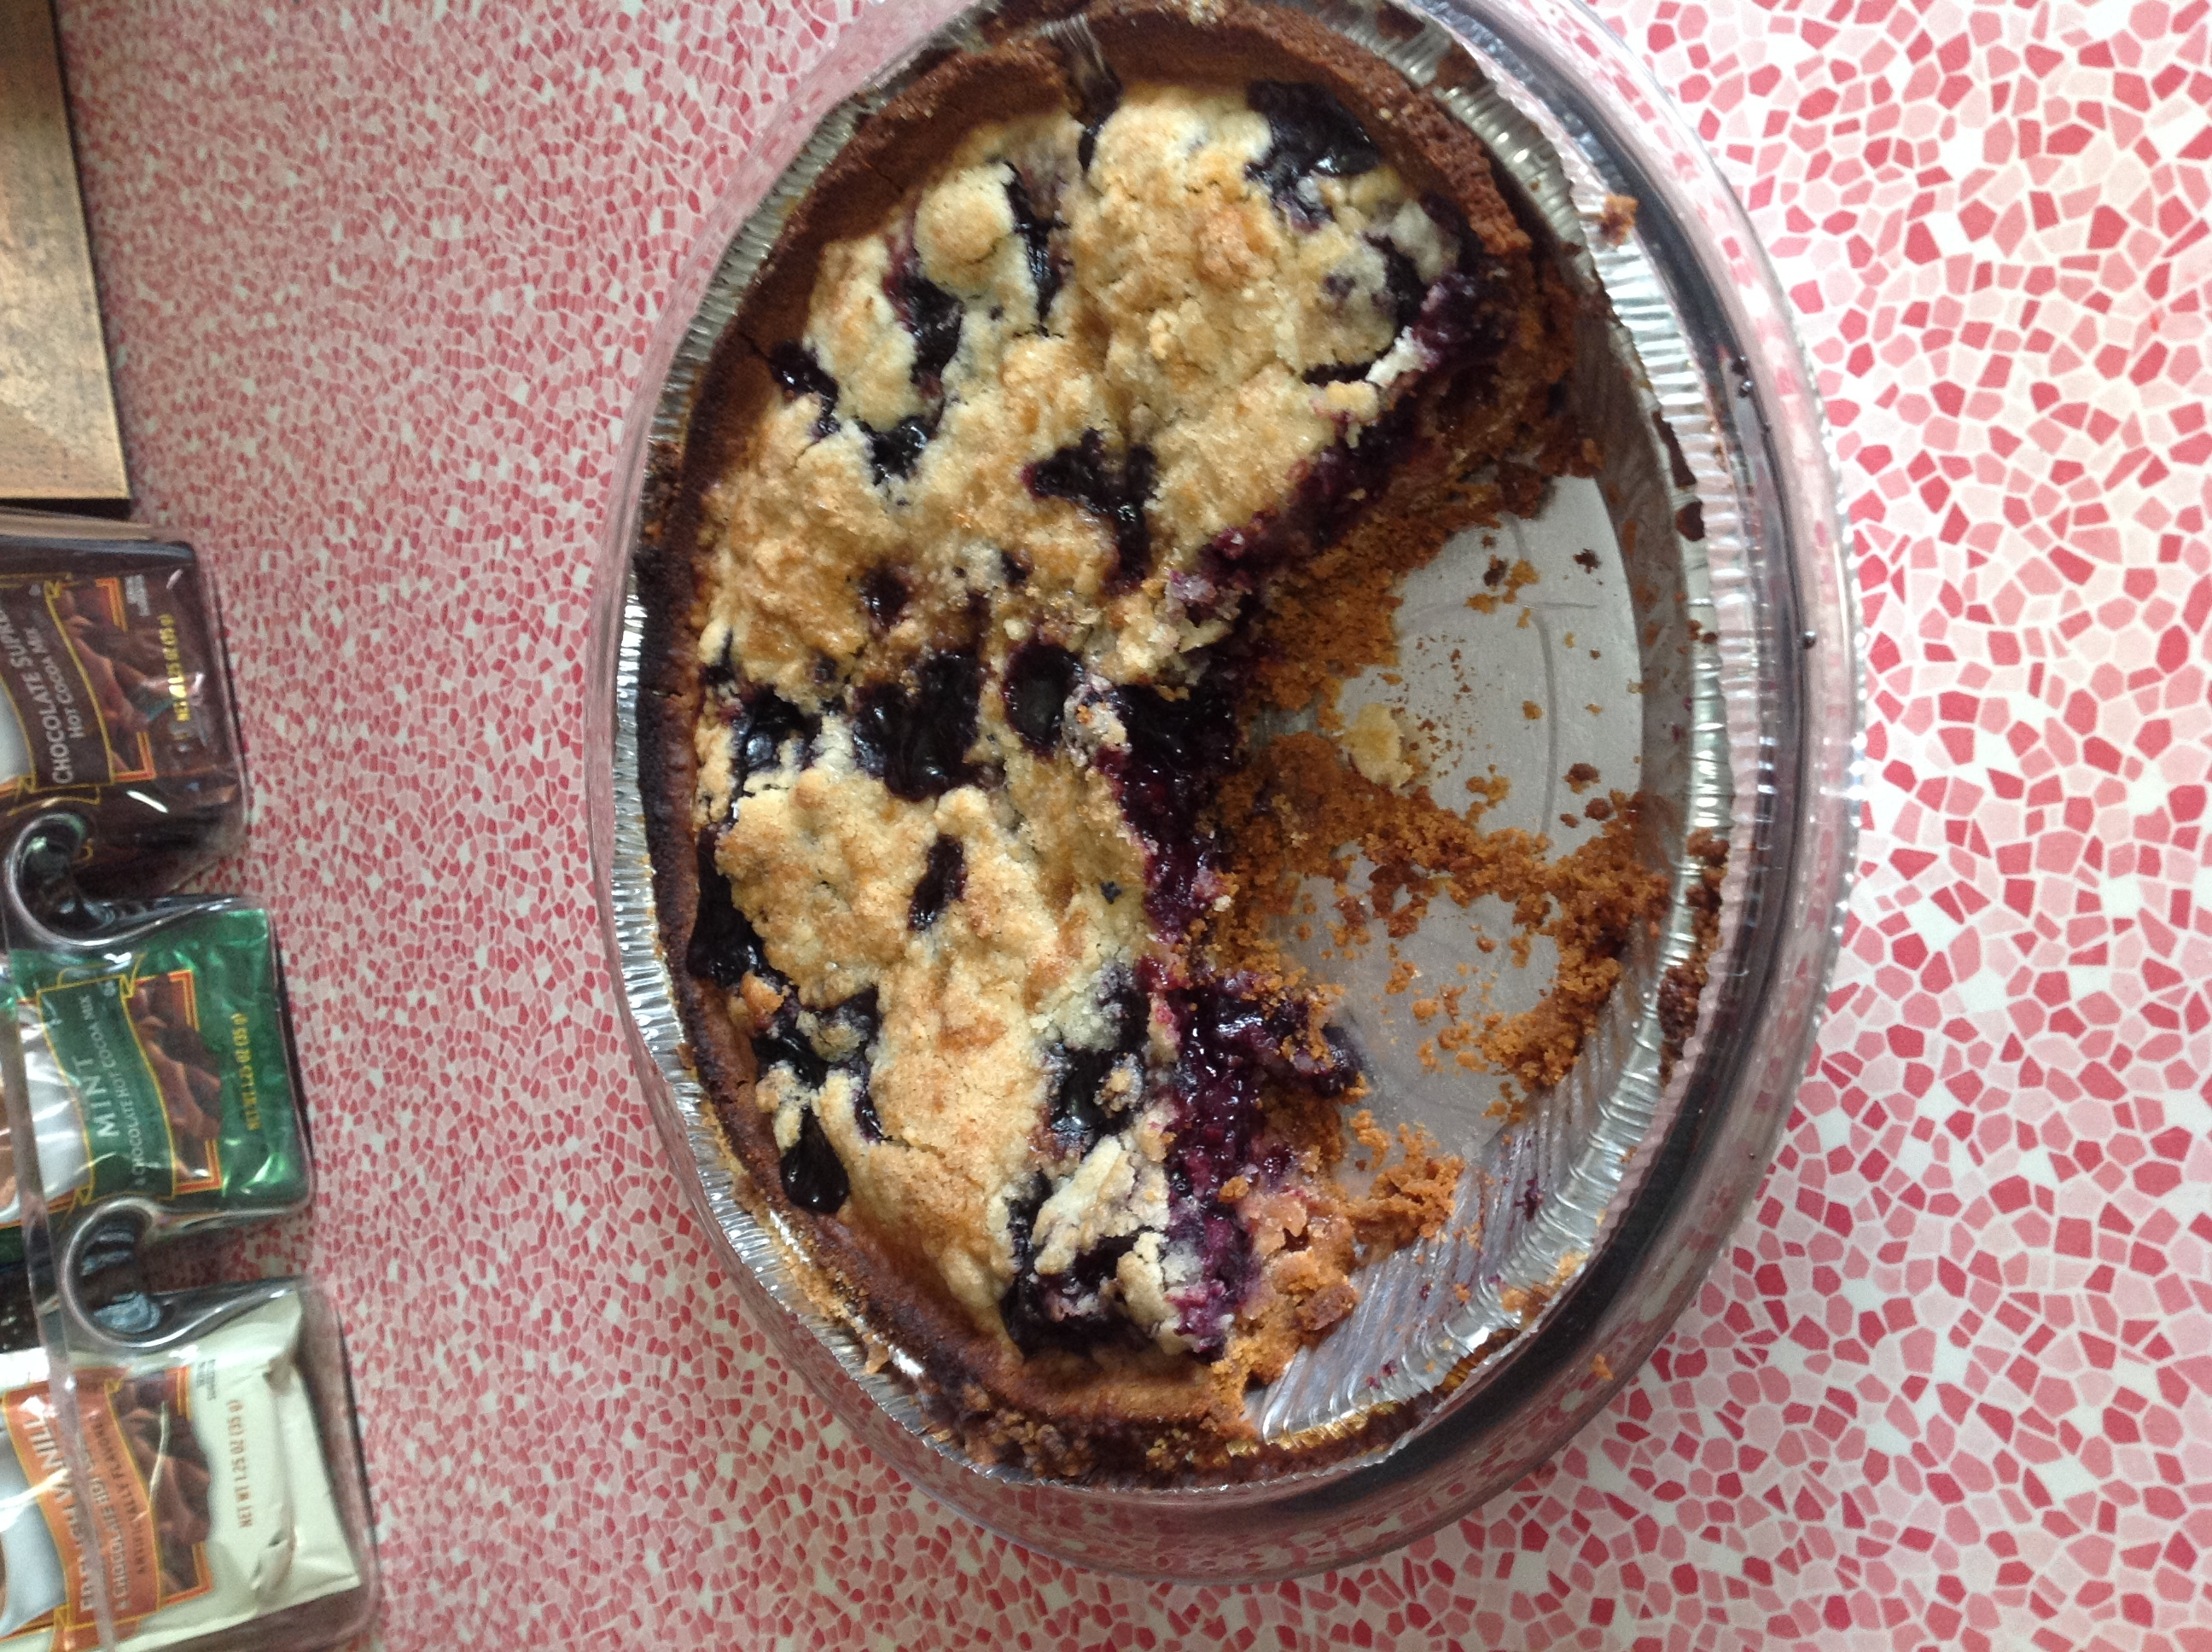 Blueberry Pie with Graham Cracker Crust and Crumb Topping Recipe